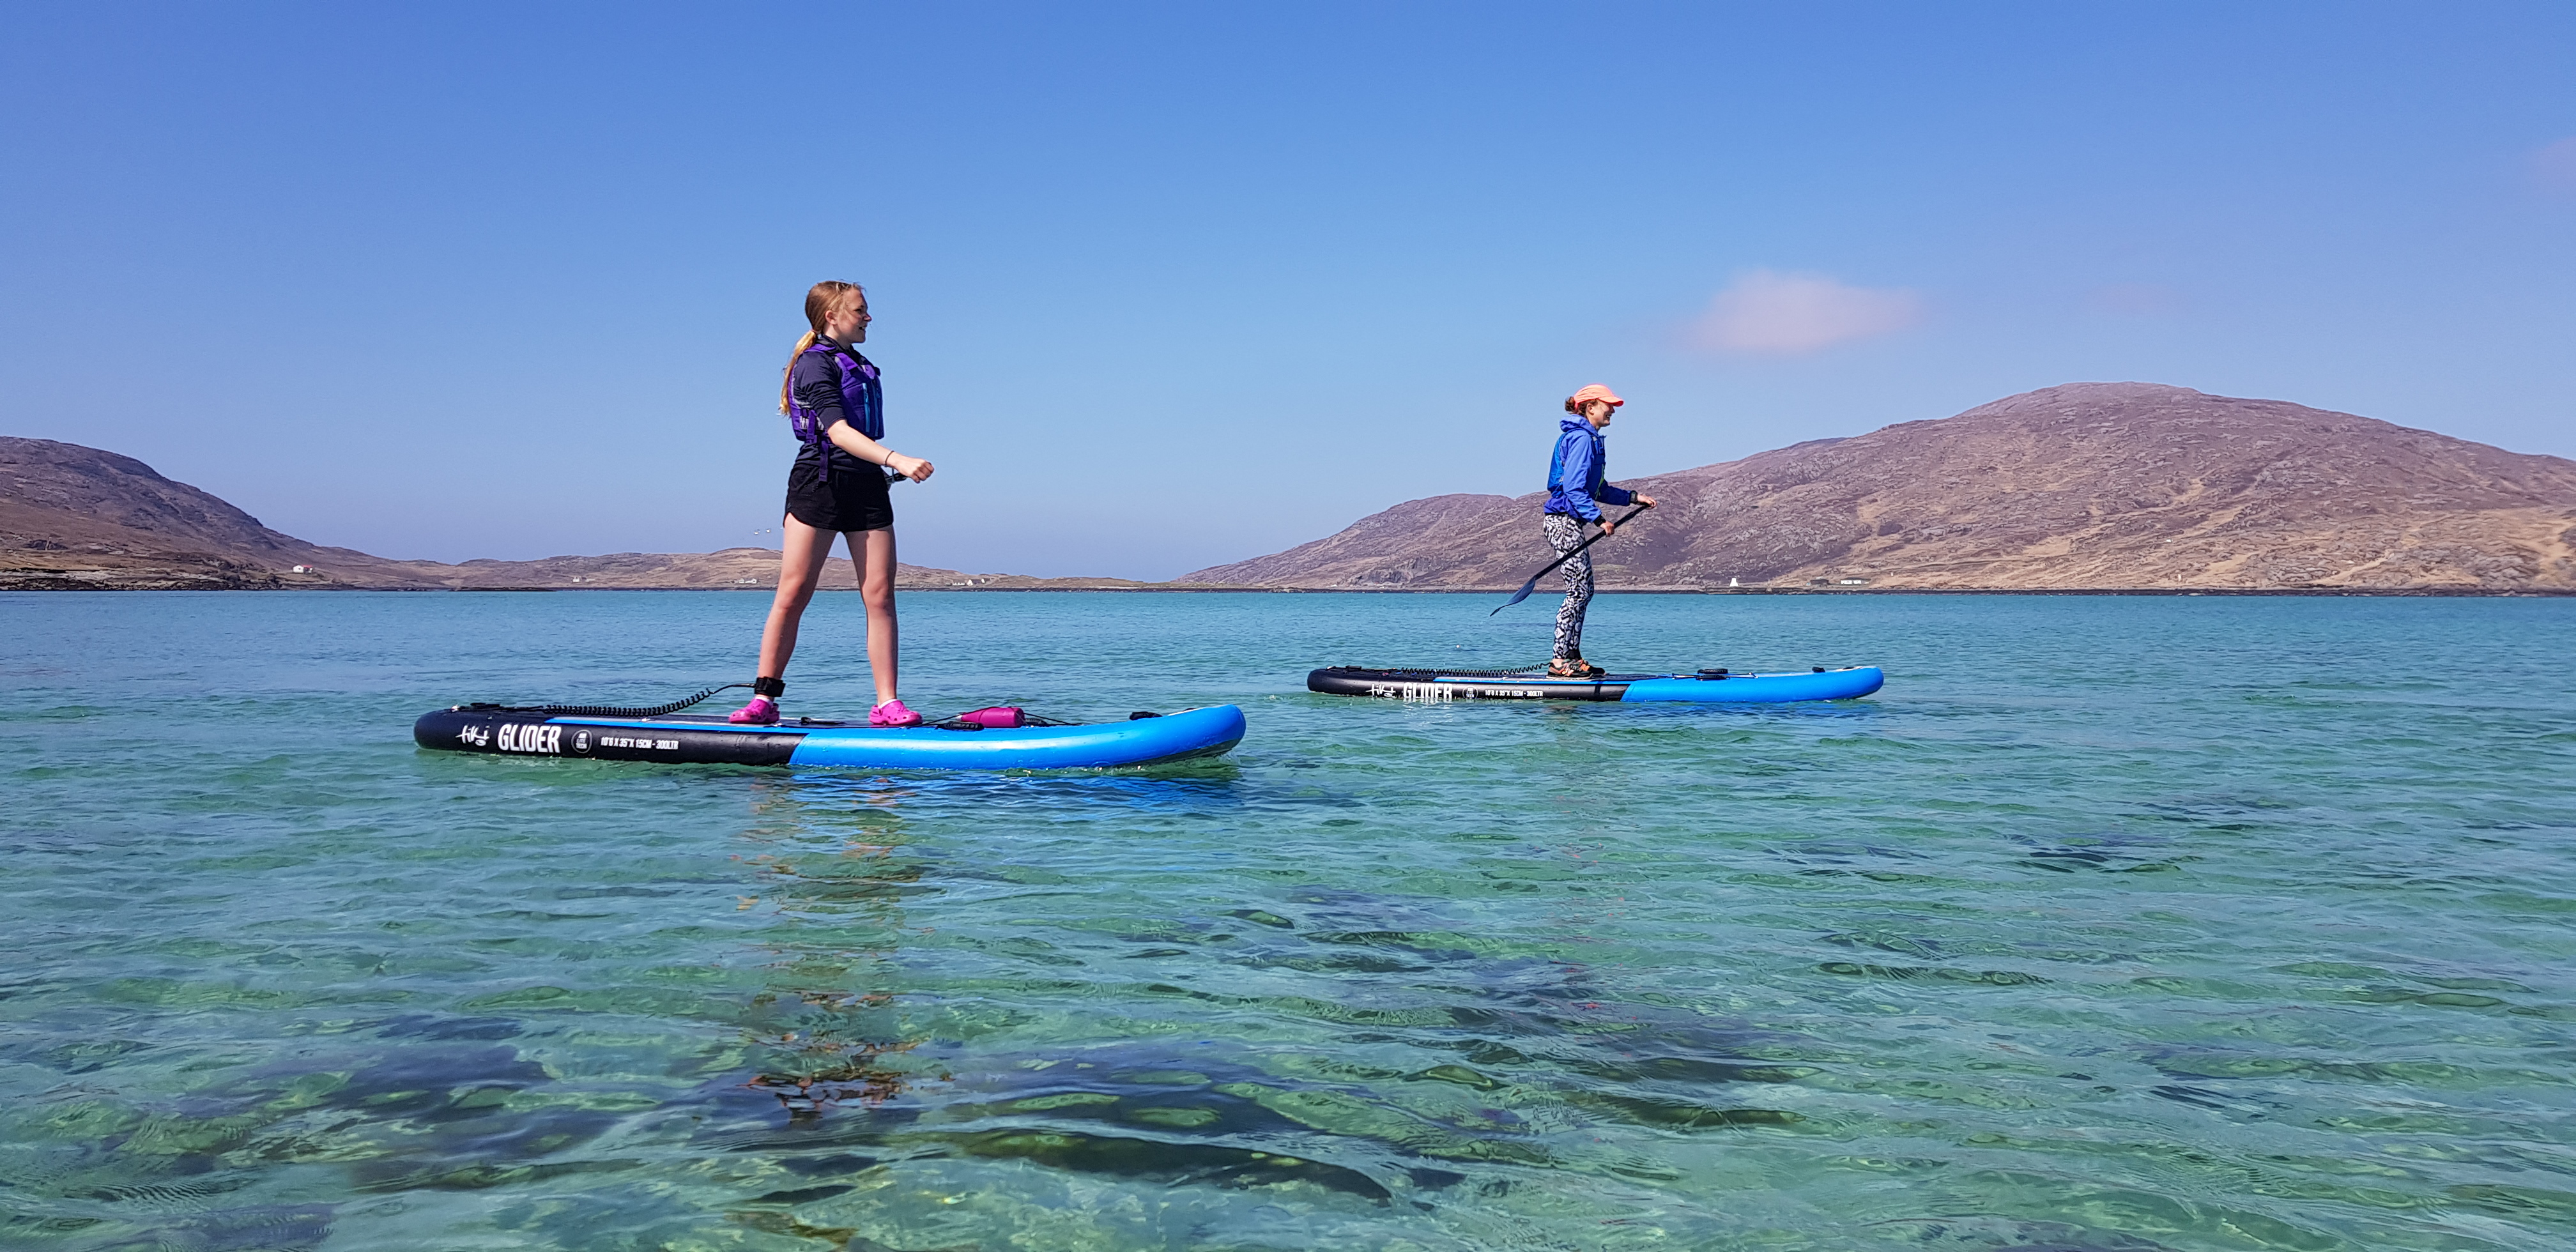 Paddleboard trips, lessons or hire